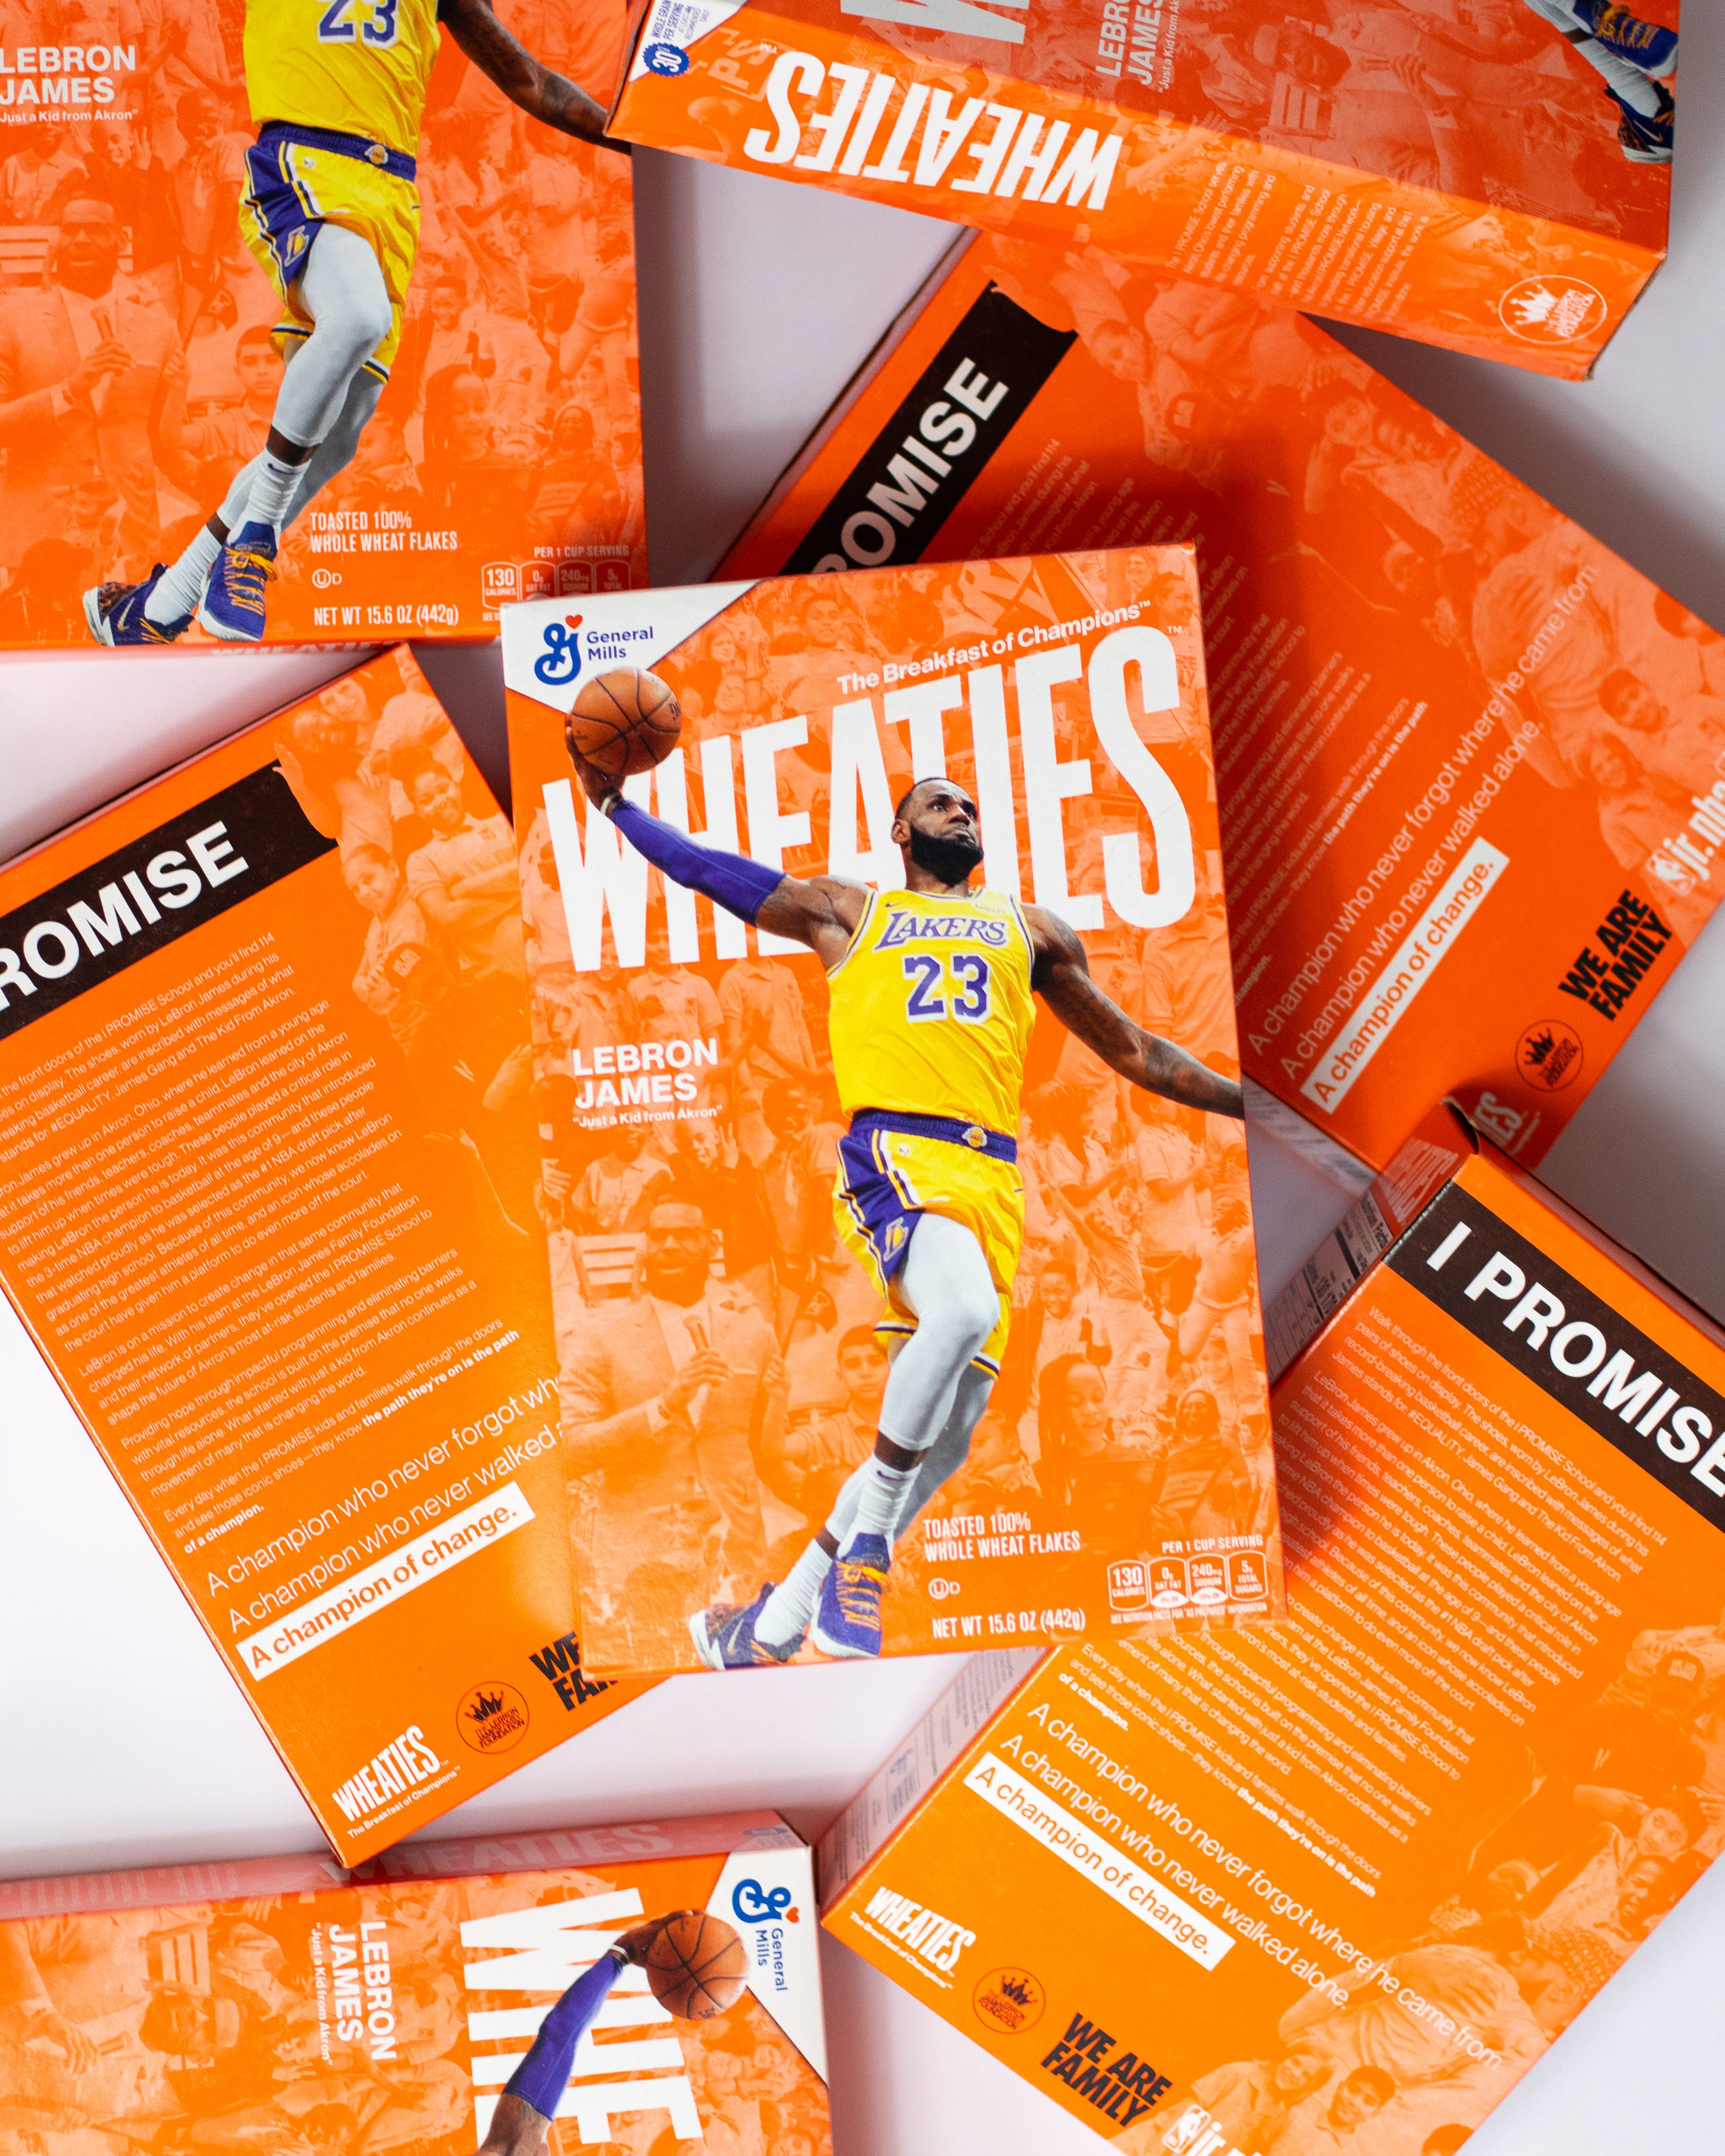 Wheaties breaks tradition with new LeBron James box by highlighting his I Promise School